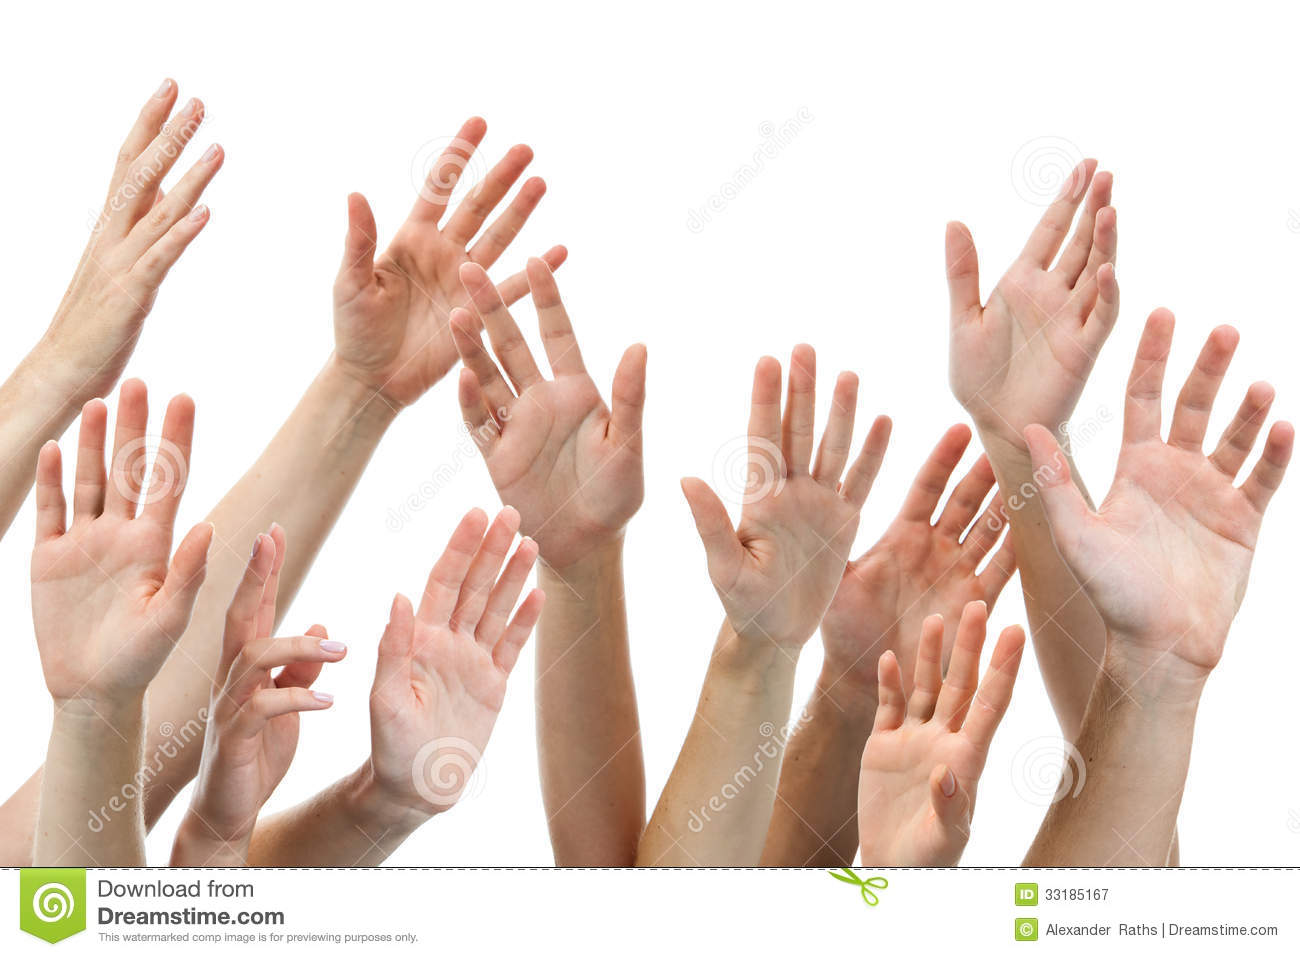 Human Hands Raised Royalty Free Stock Photography - Image: 33185167